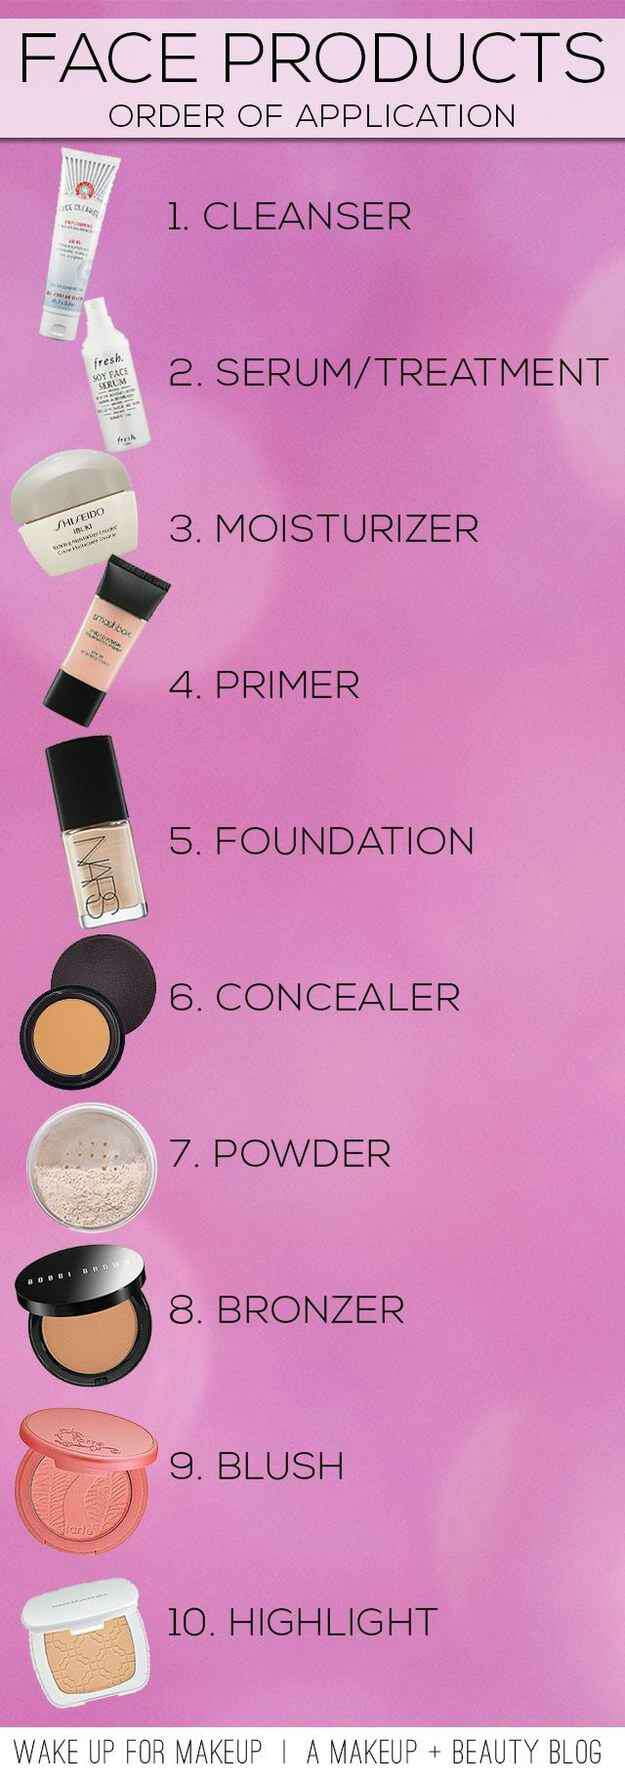 8. Having a ton of products means you may be unsure about when to use each one.